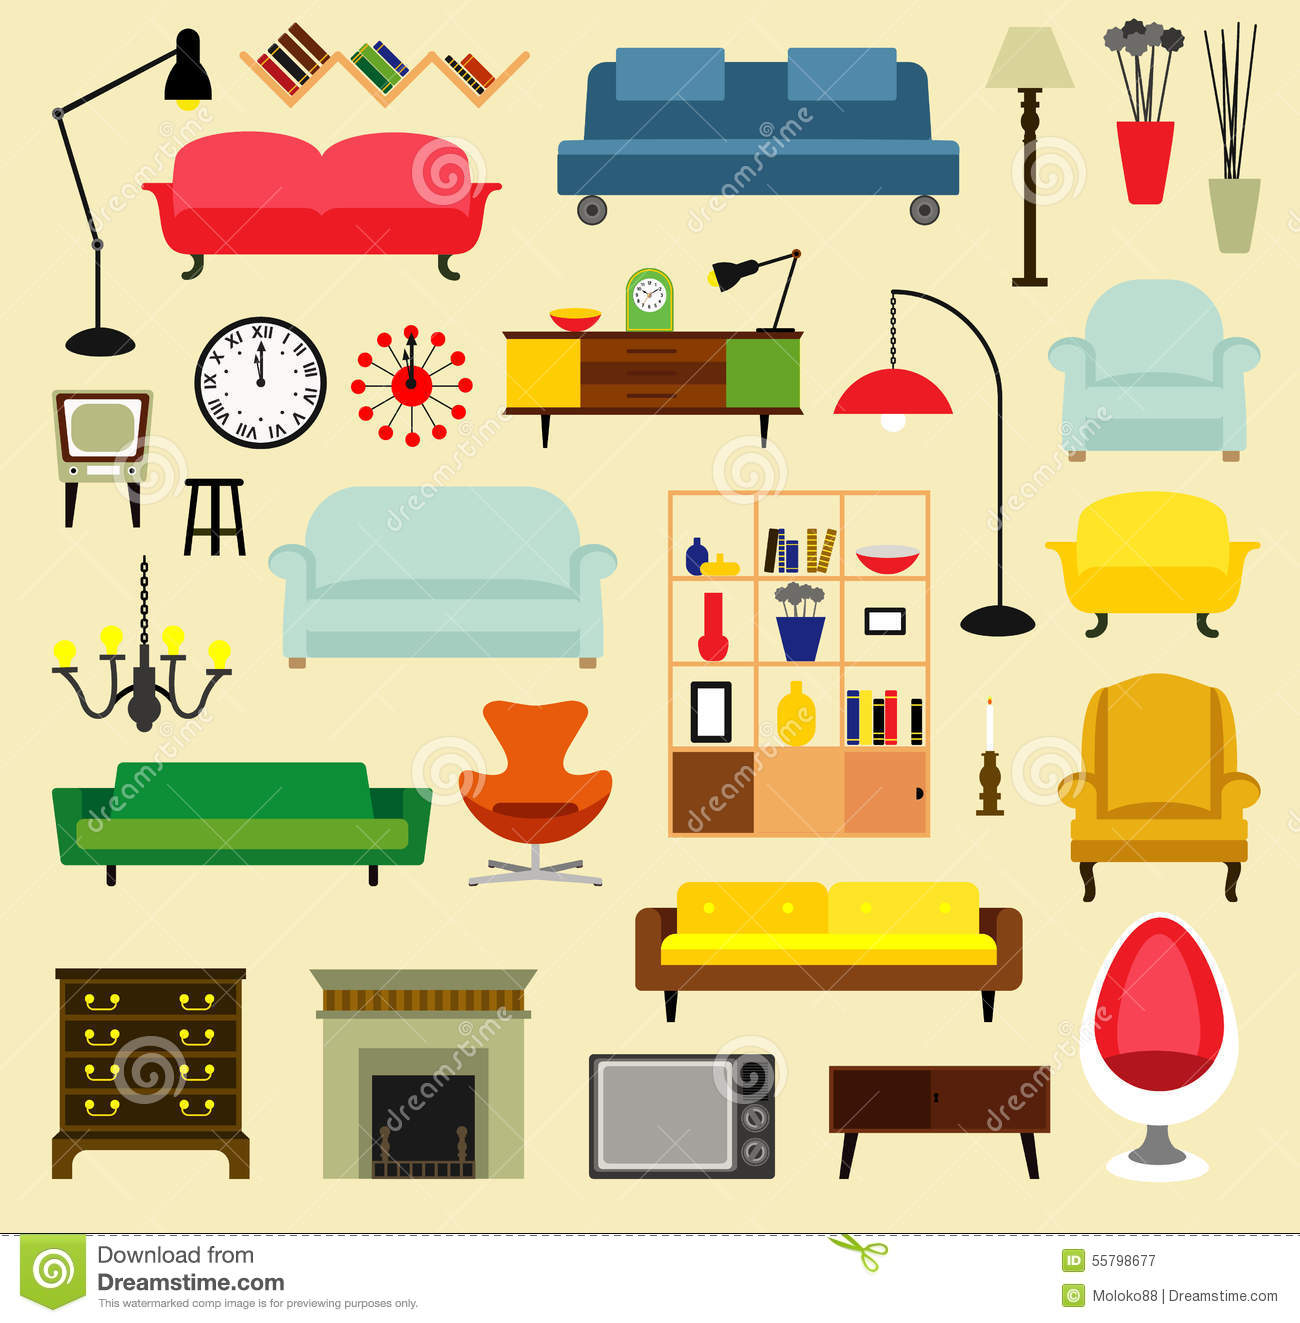 Furniture Ideas For Living Room Stock Vector Illustration of